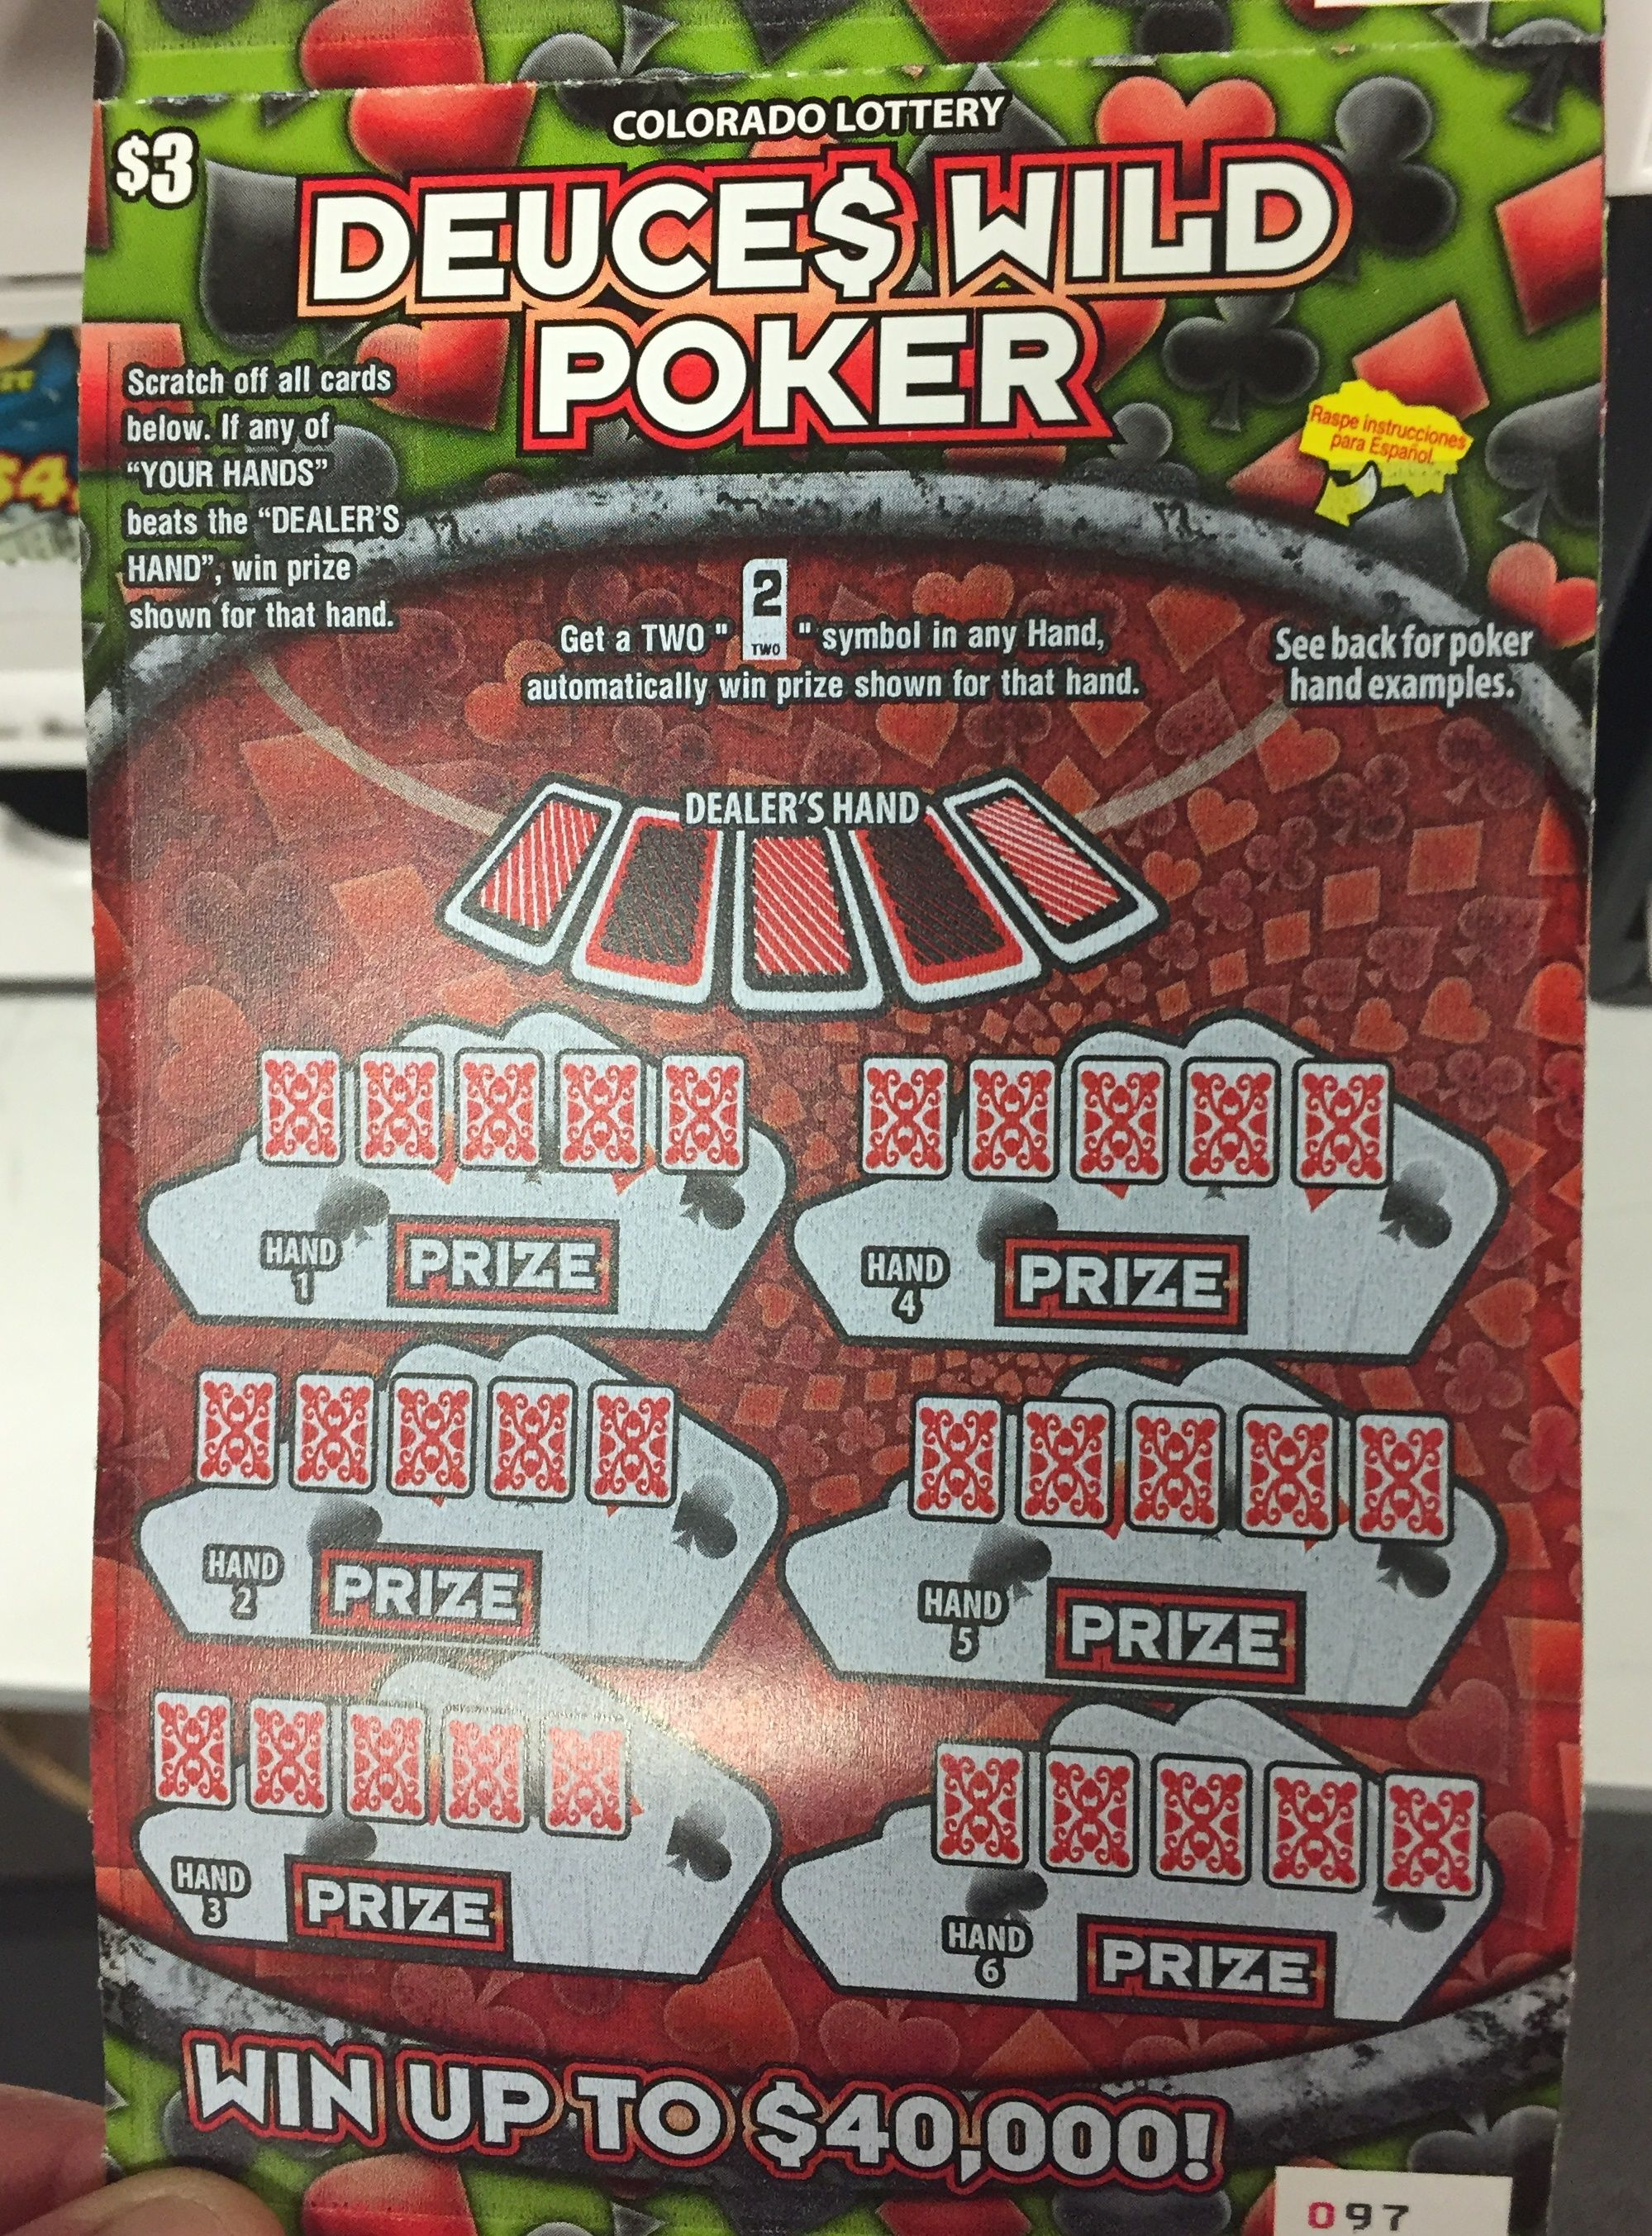 Deuces wild poker has top prizes of 40 grand wanna try